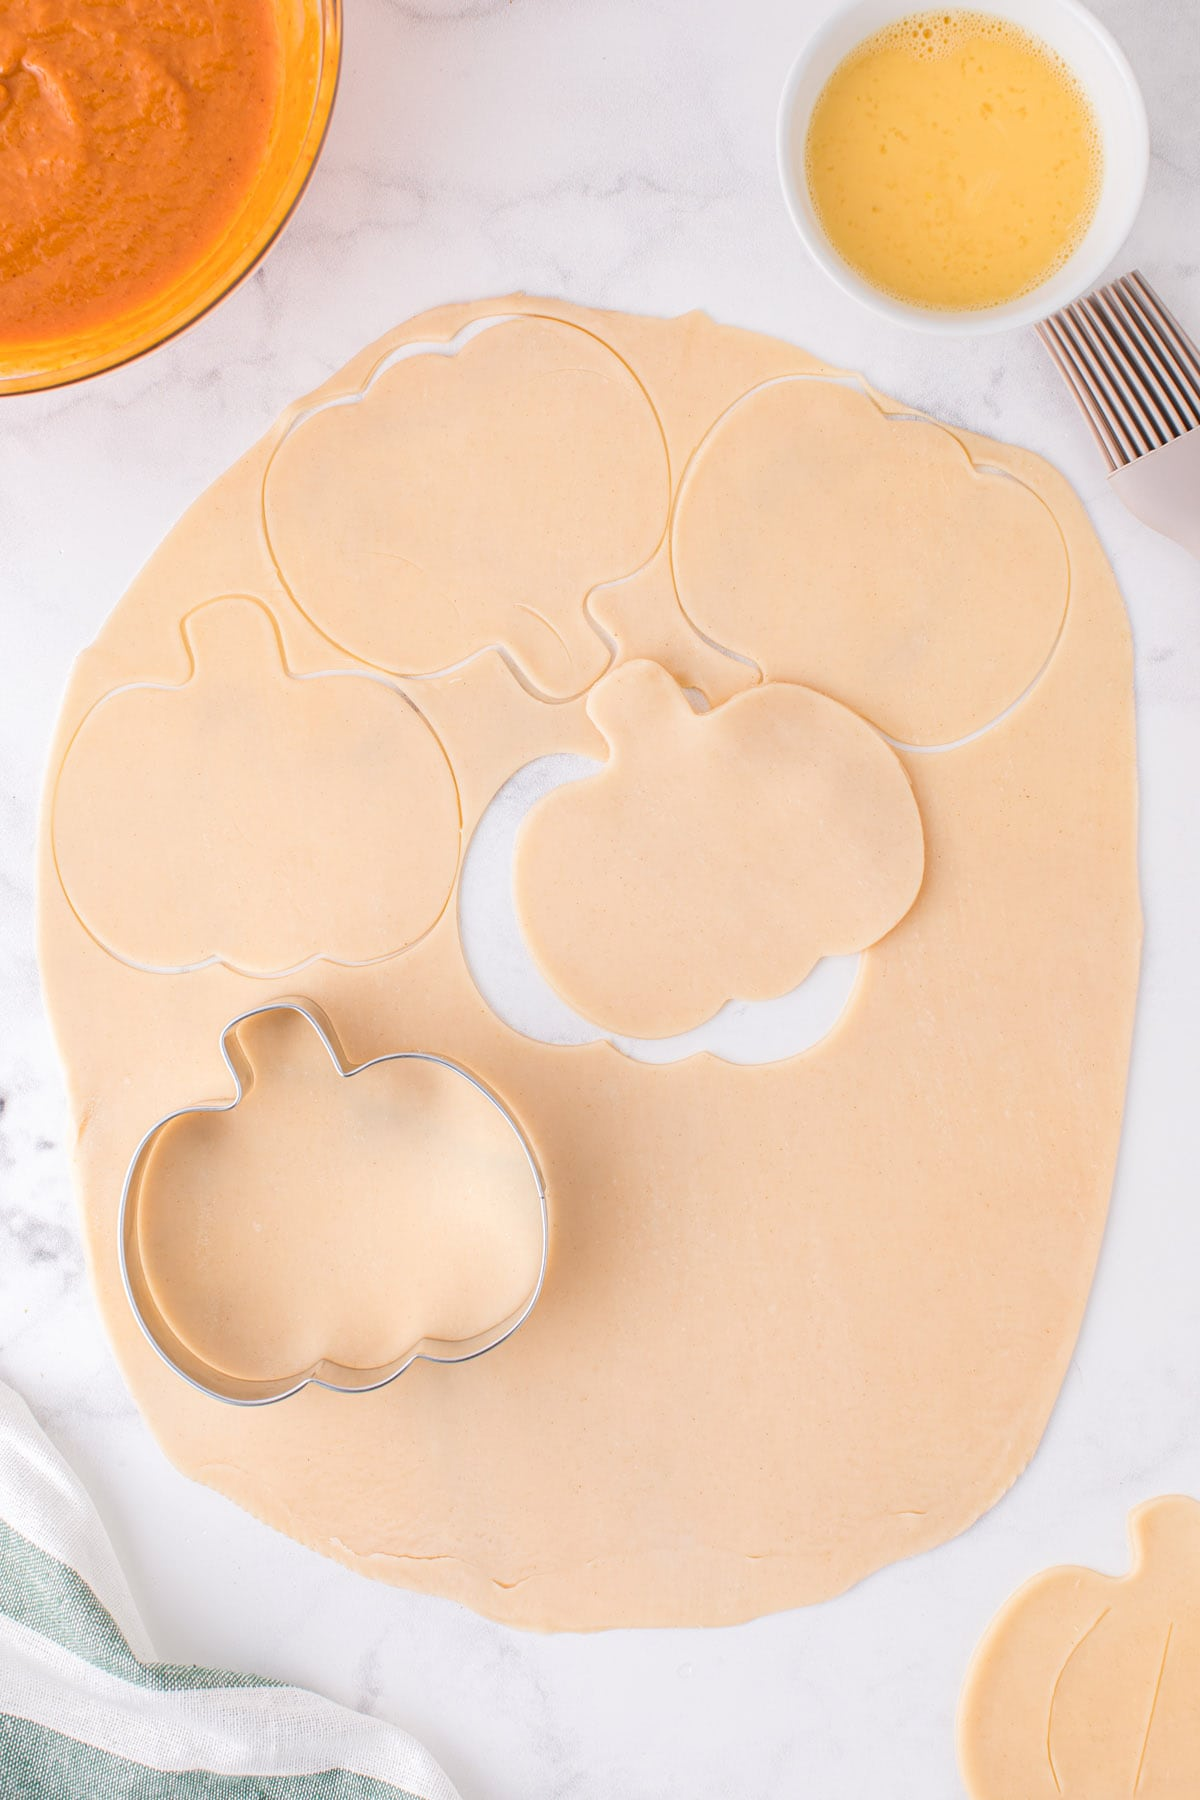 cut out pumpkin shapes with a cookie cutter